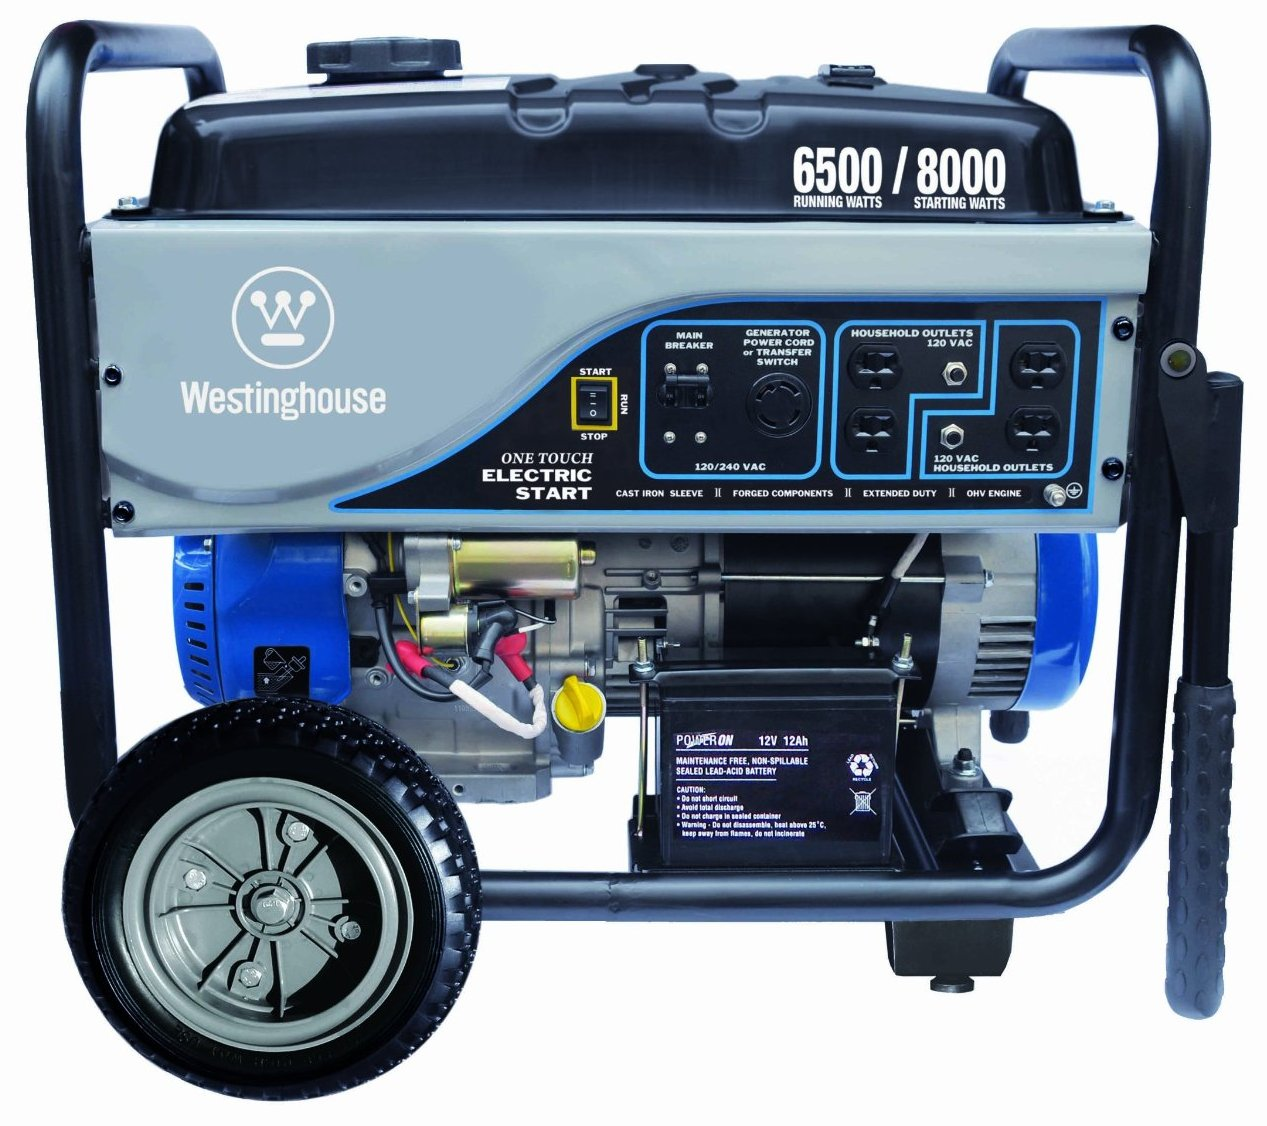 Westinghouse WH6500E. Westinghouse WH6500E Portable Generator